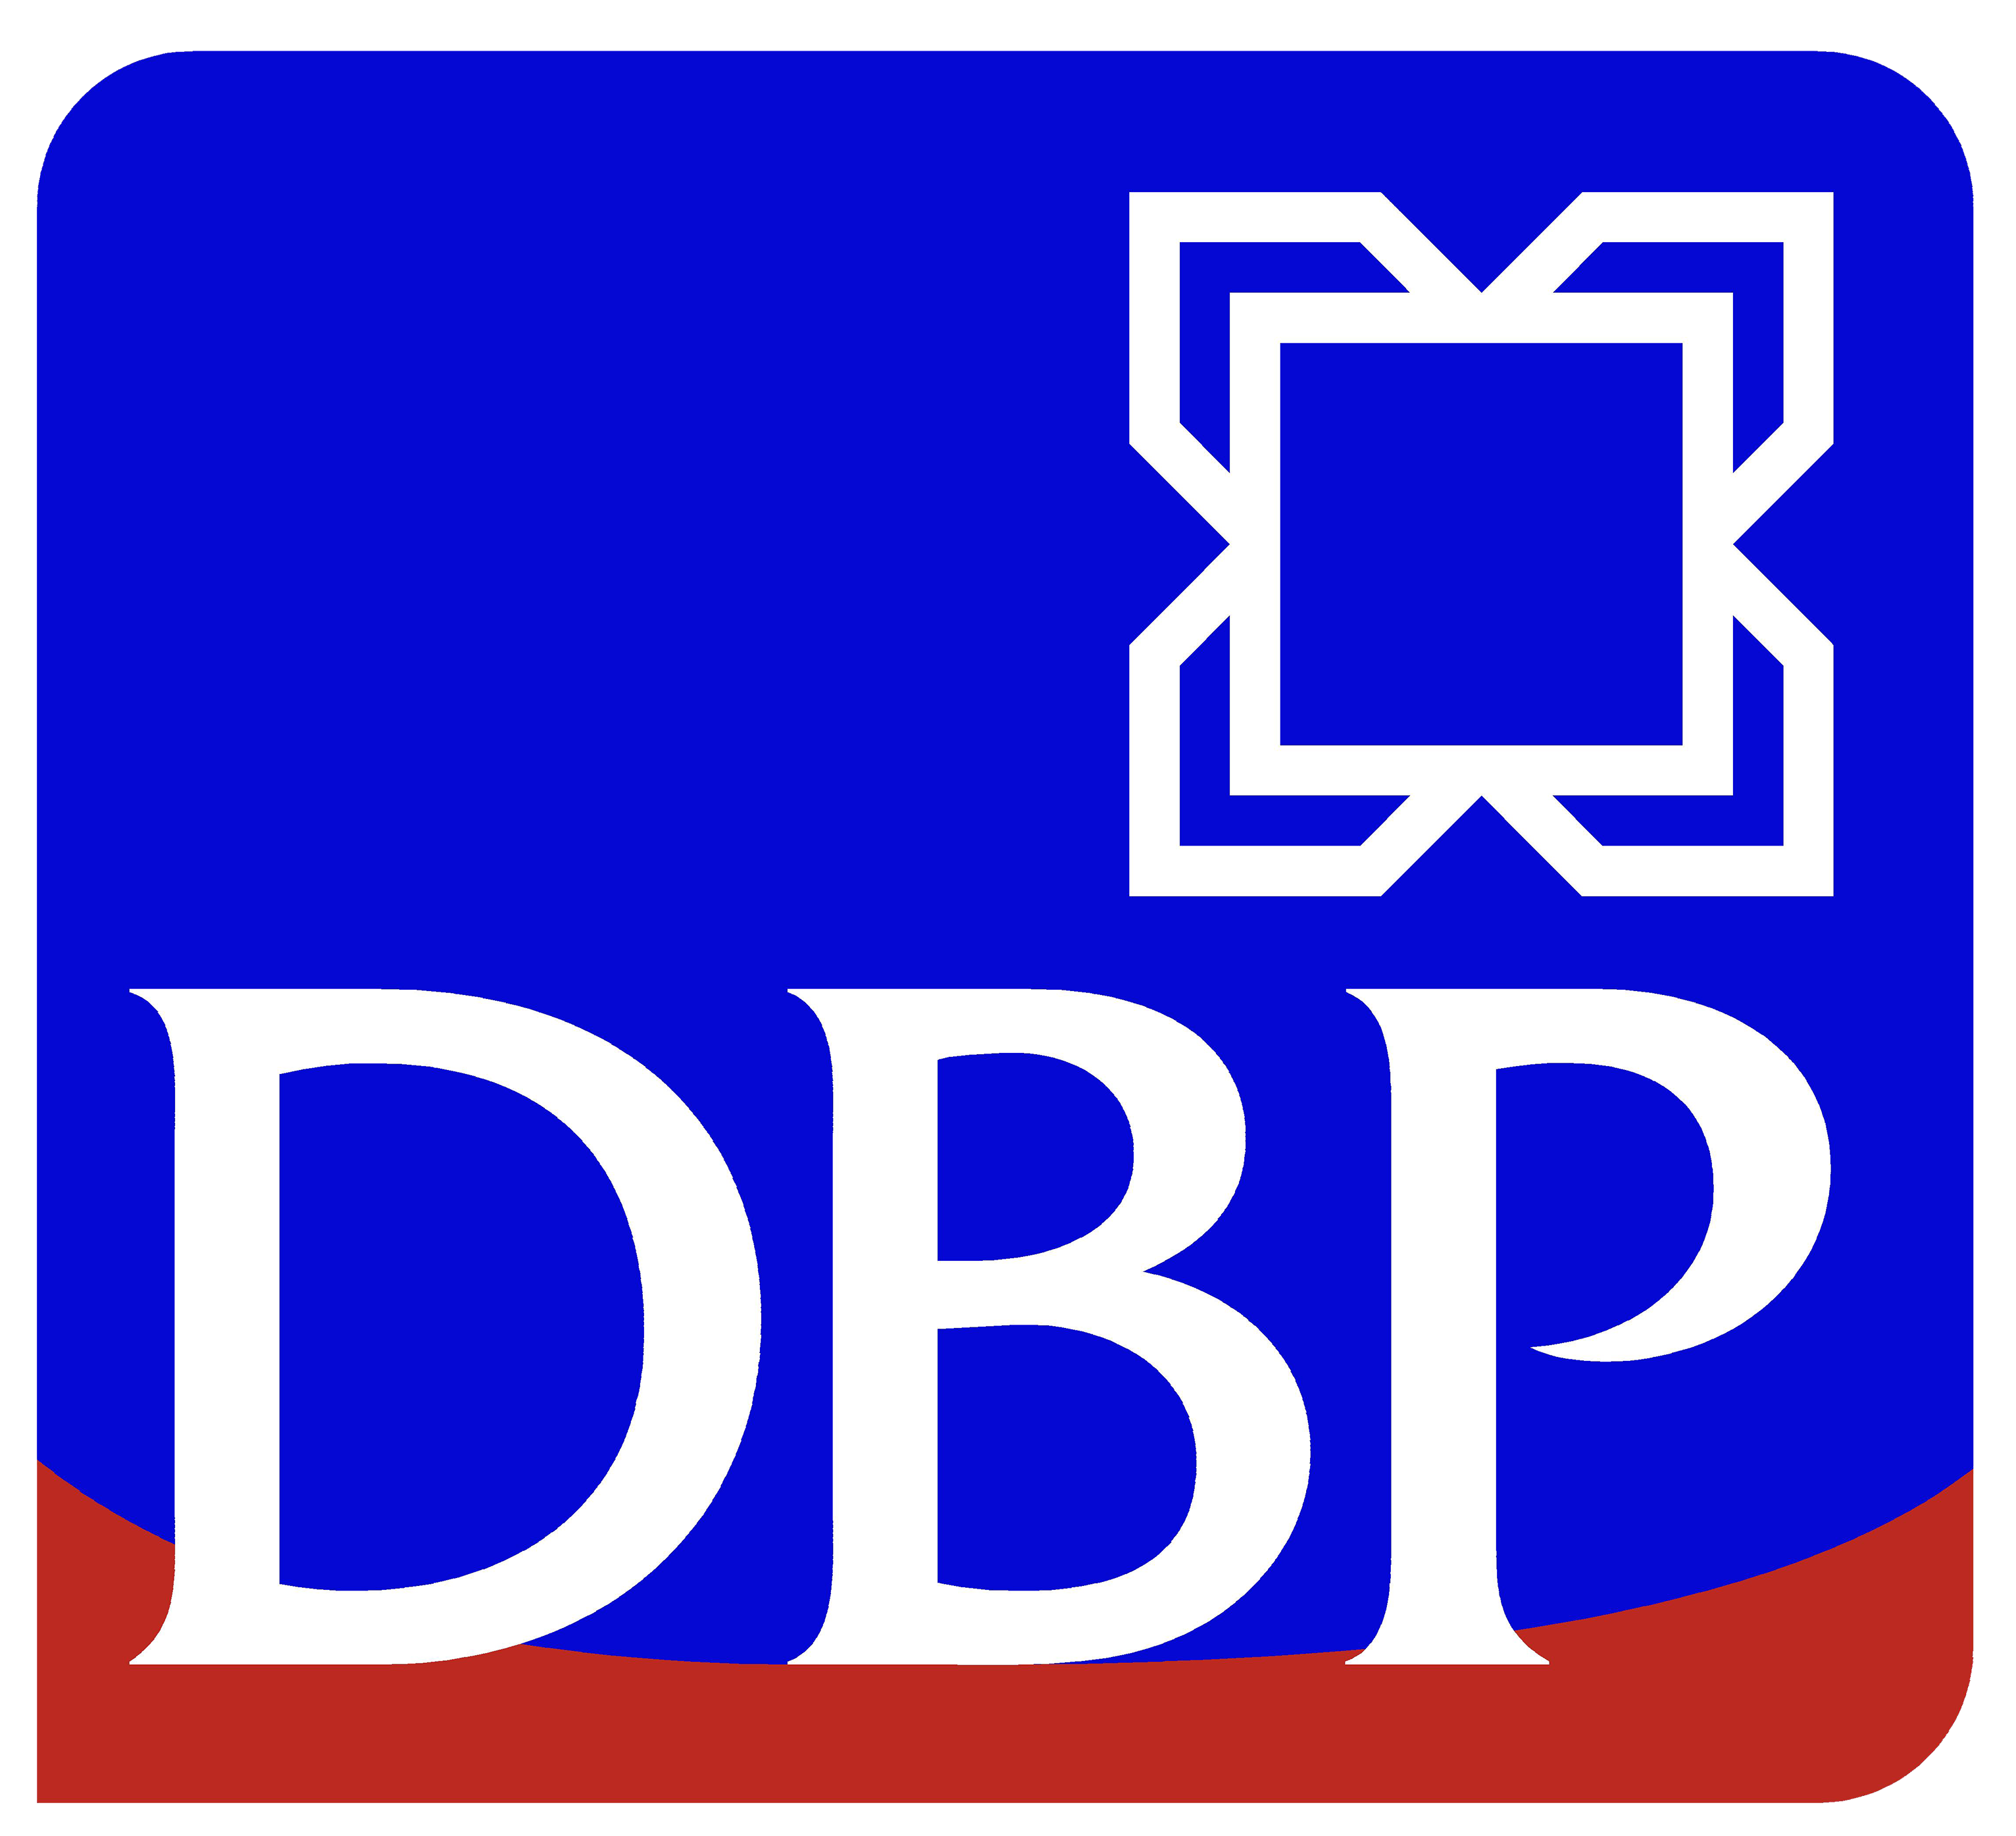 DBP GROUP